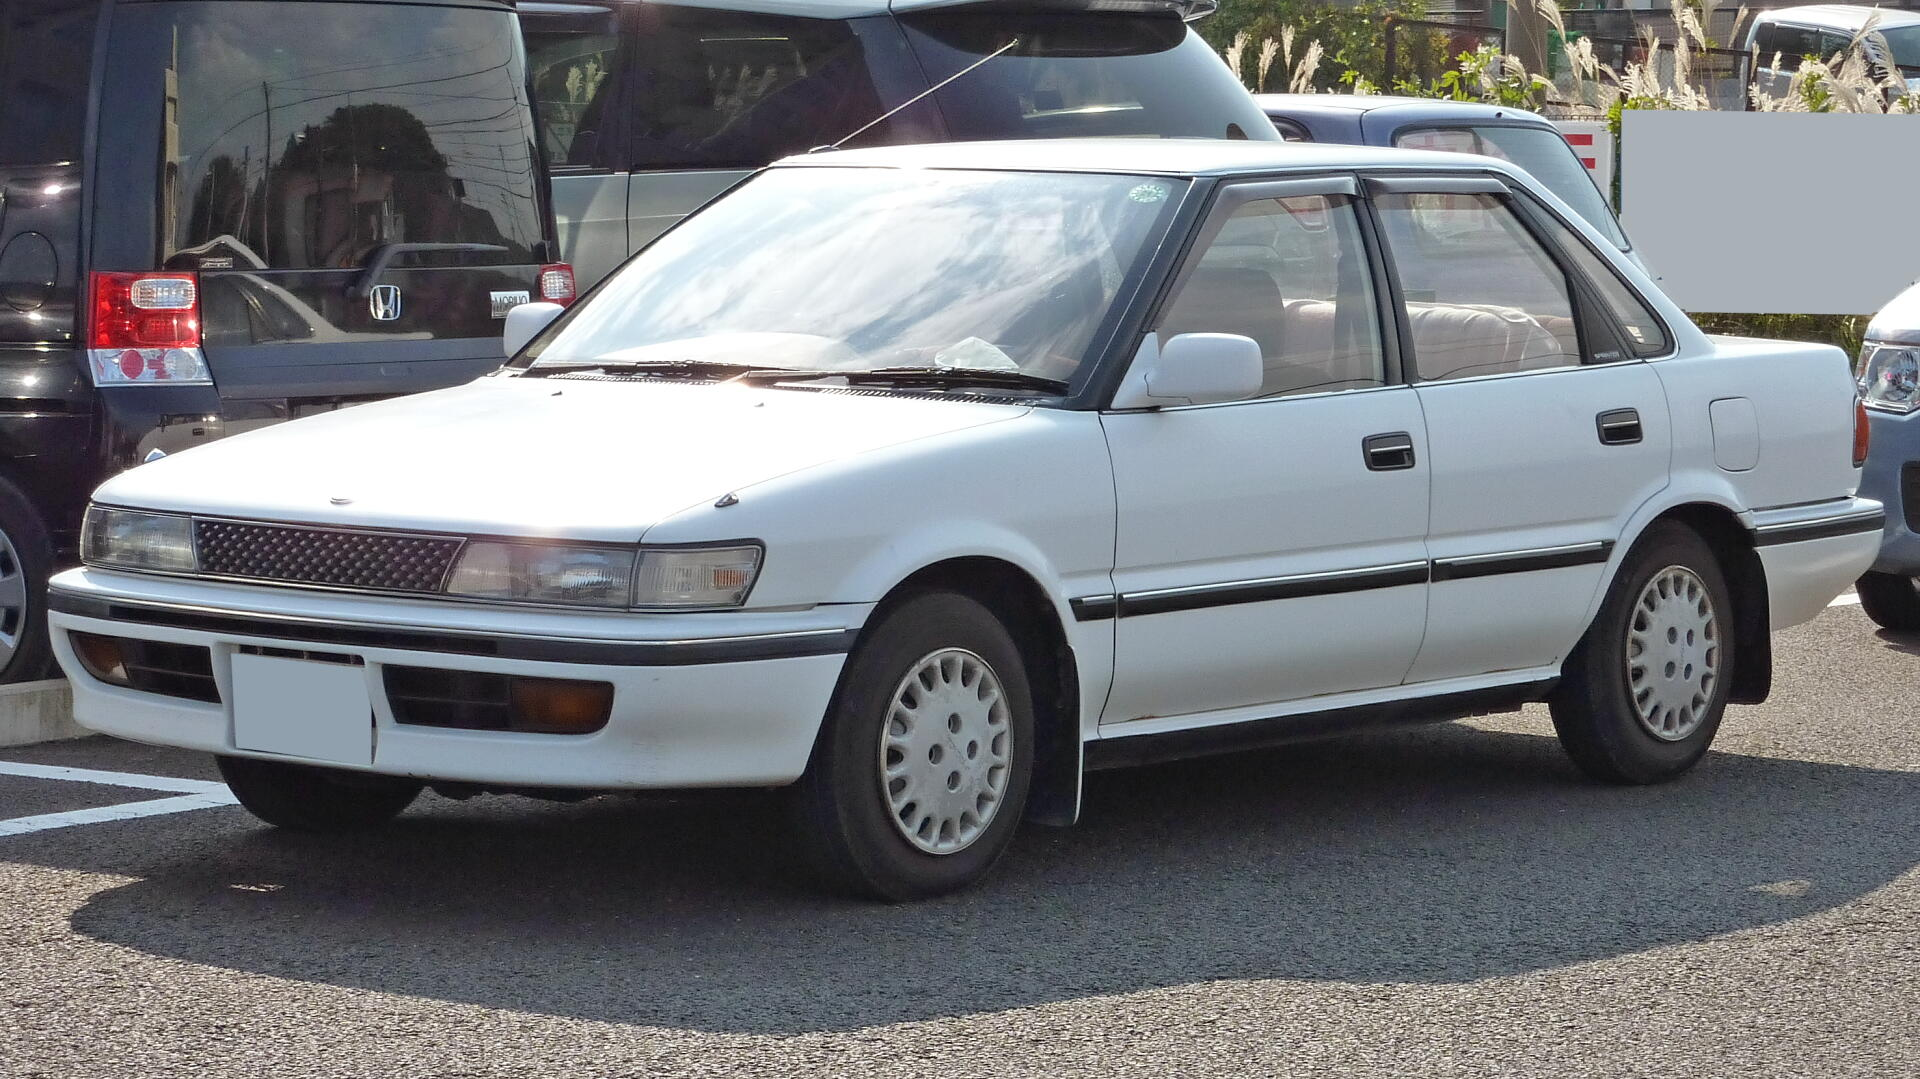 An example of a used 1990 Toyota Sprinter sedan from online used Japanese car exporter BE FORWARD.